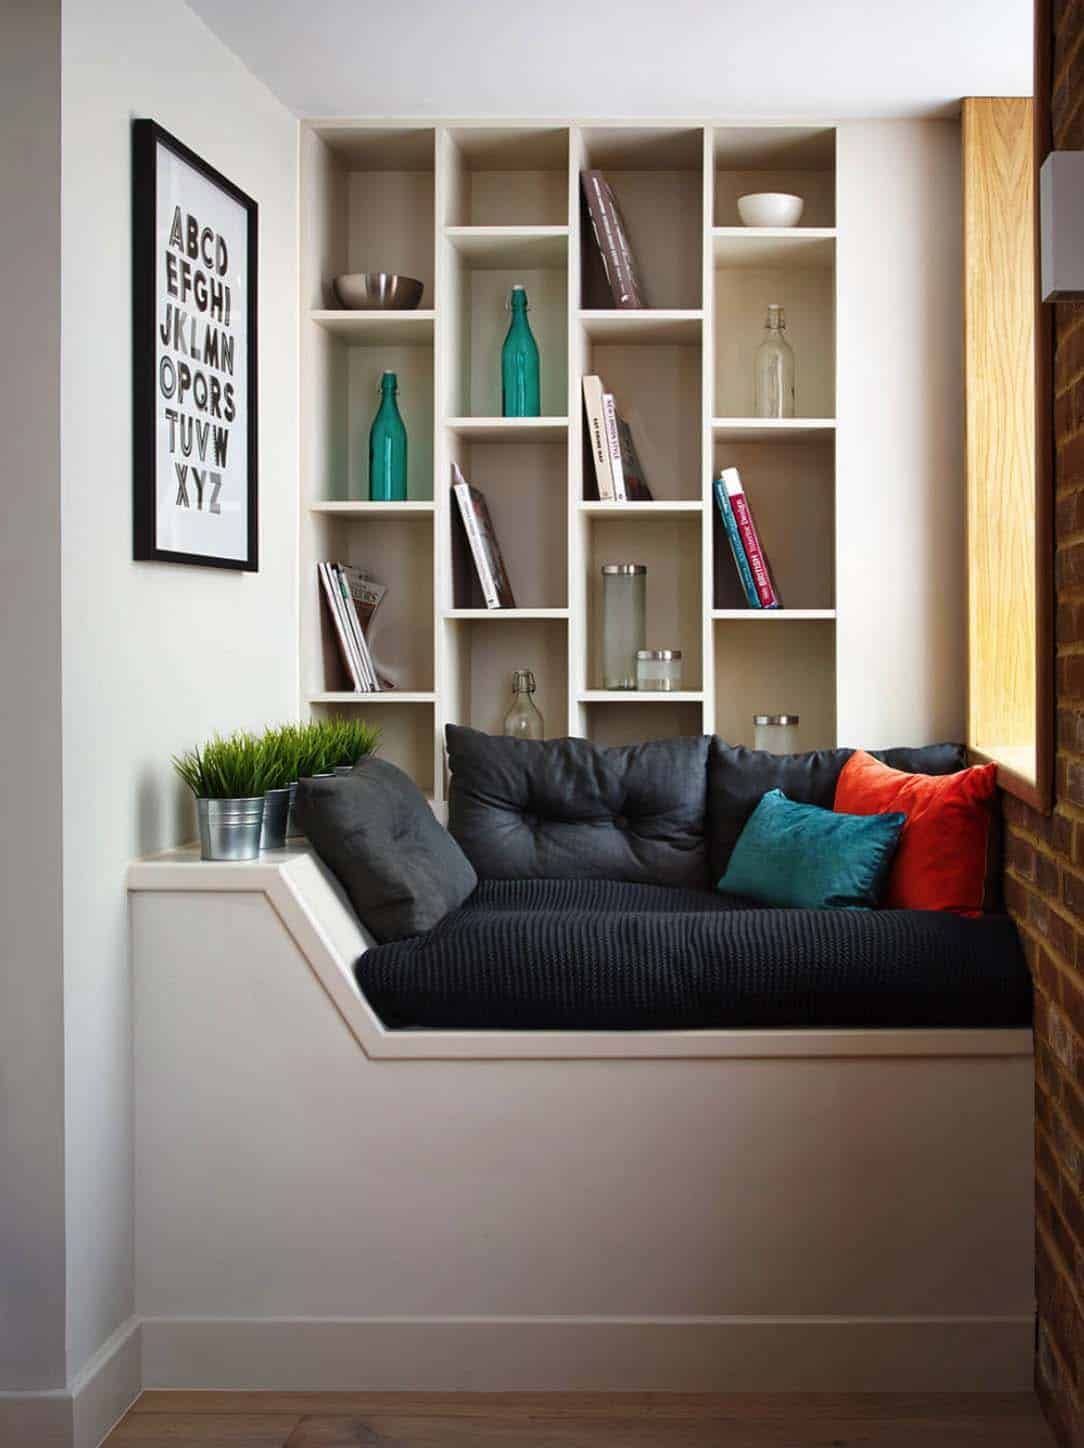 Cozy Reading Nooks For Lounging-07-1 Kindesign